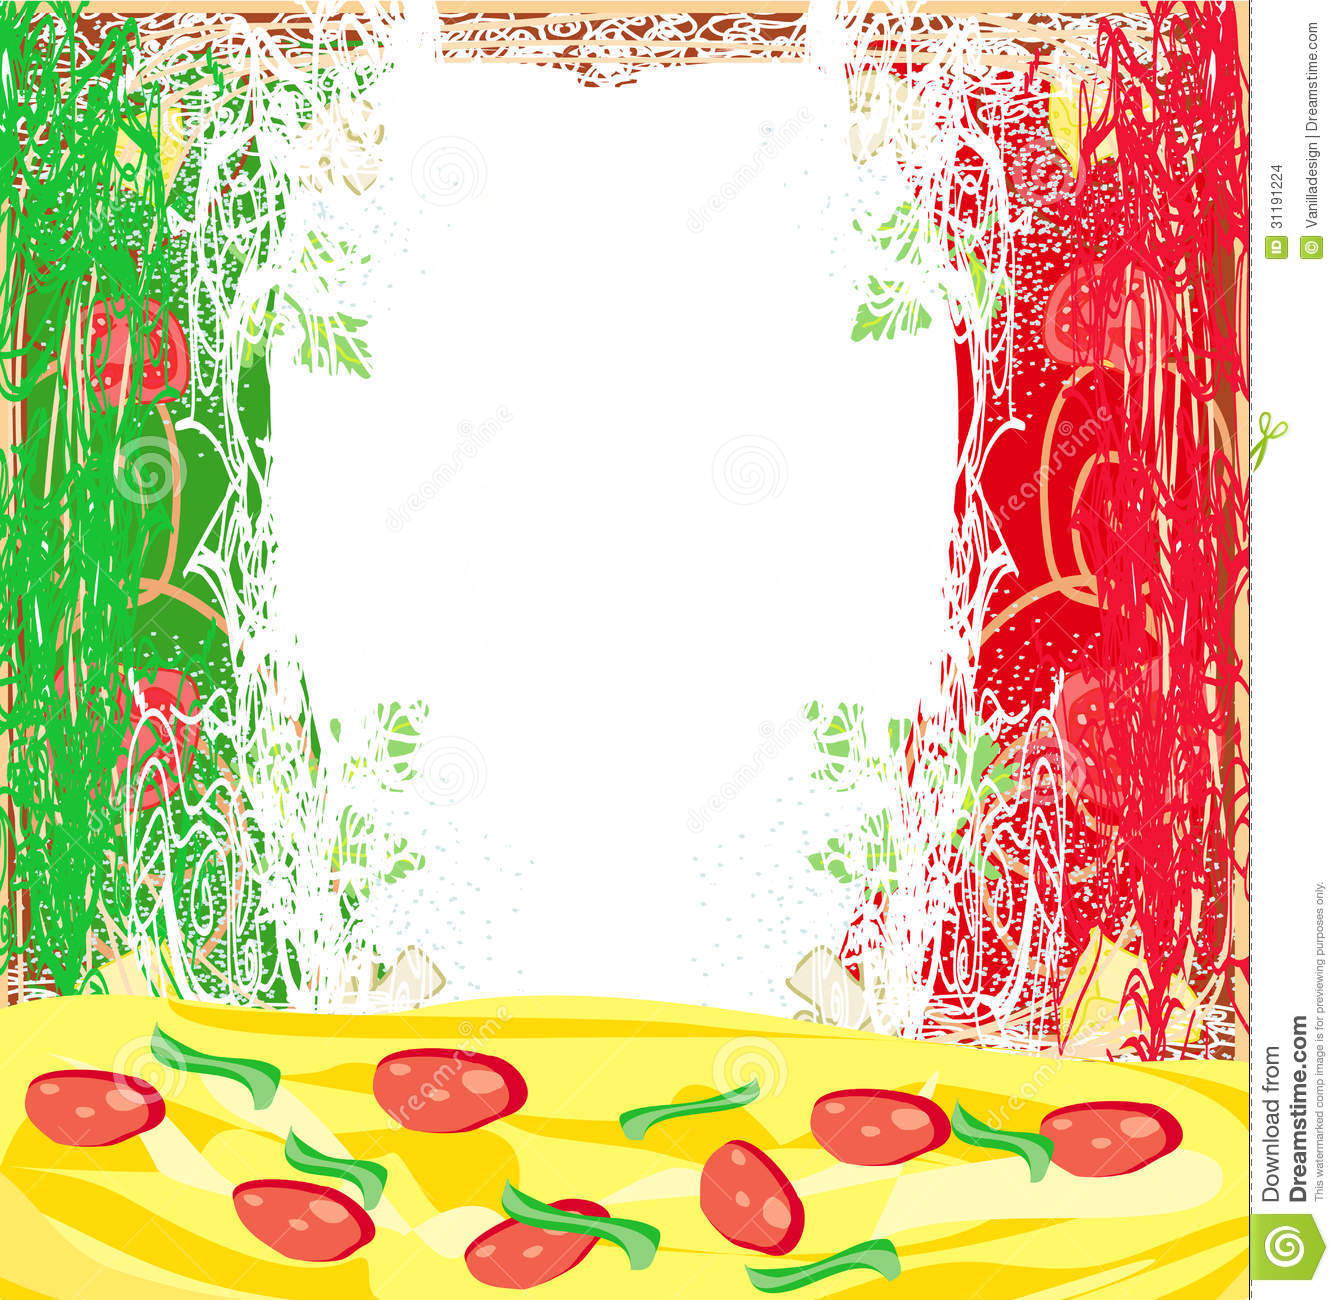 Pizza Grunge Background Design Stock Images - Image: 31191224